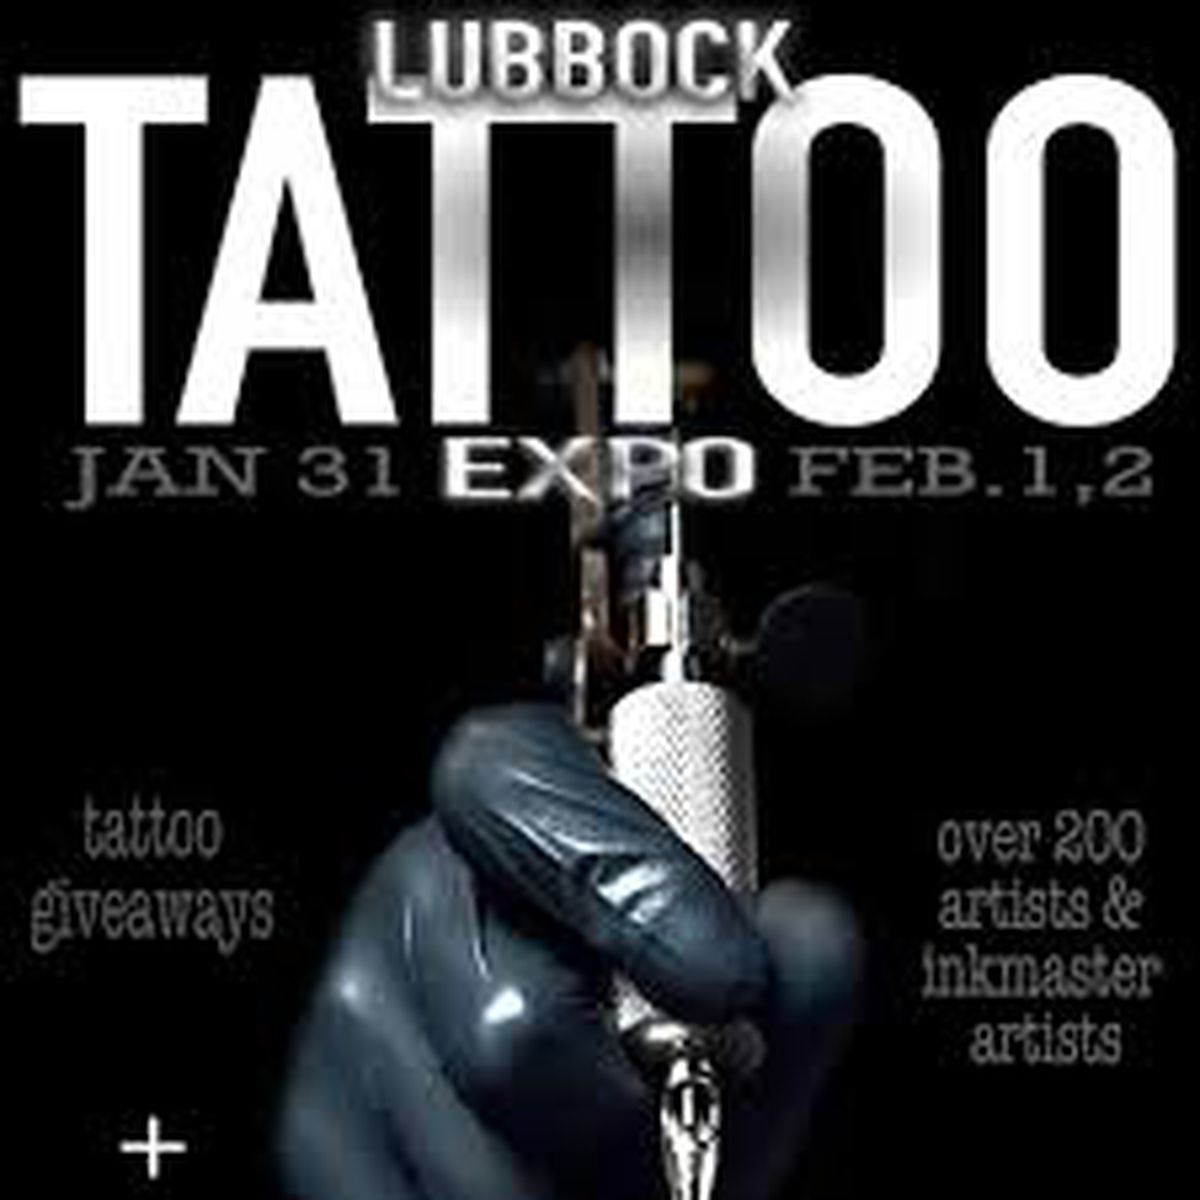 Lubbock Tattoo Expo Takes Place Jan 31 Feb 2